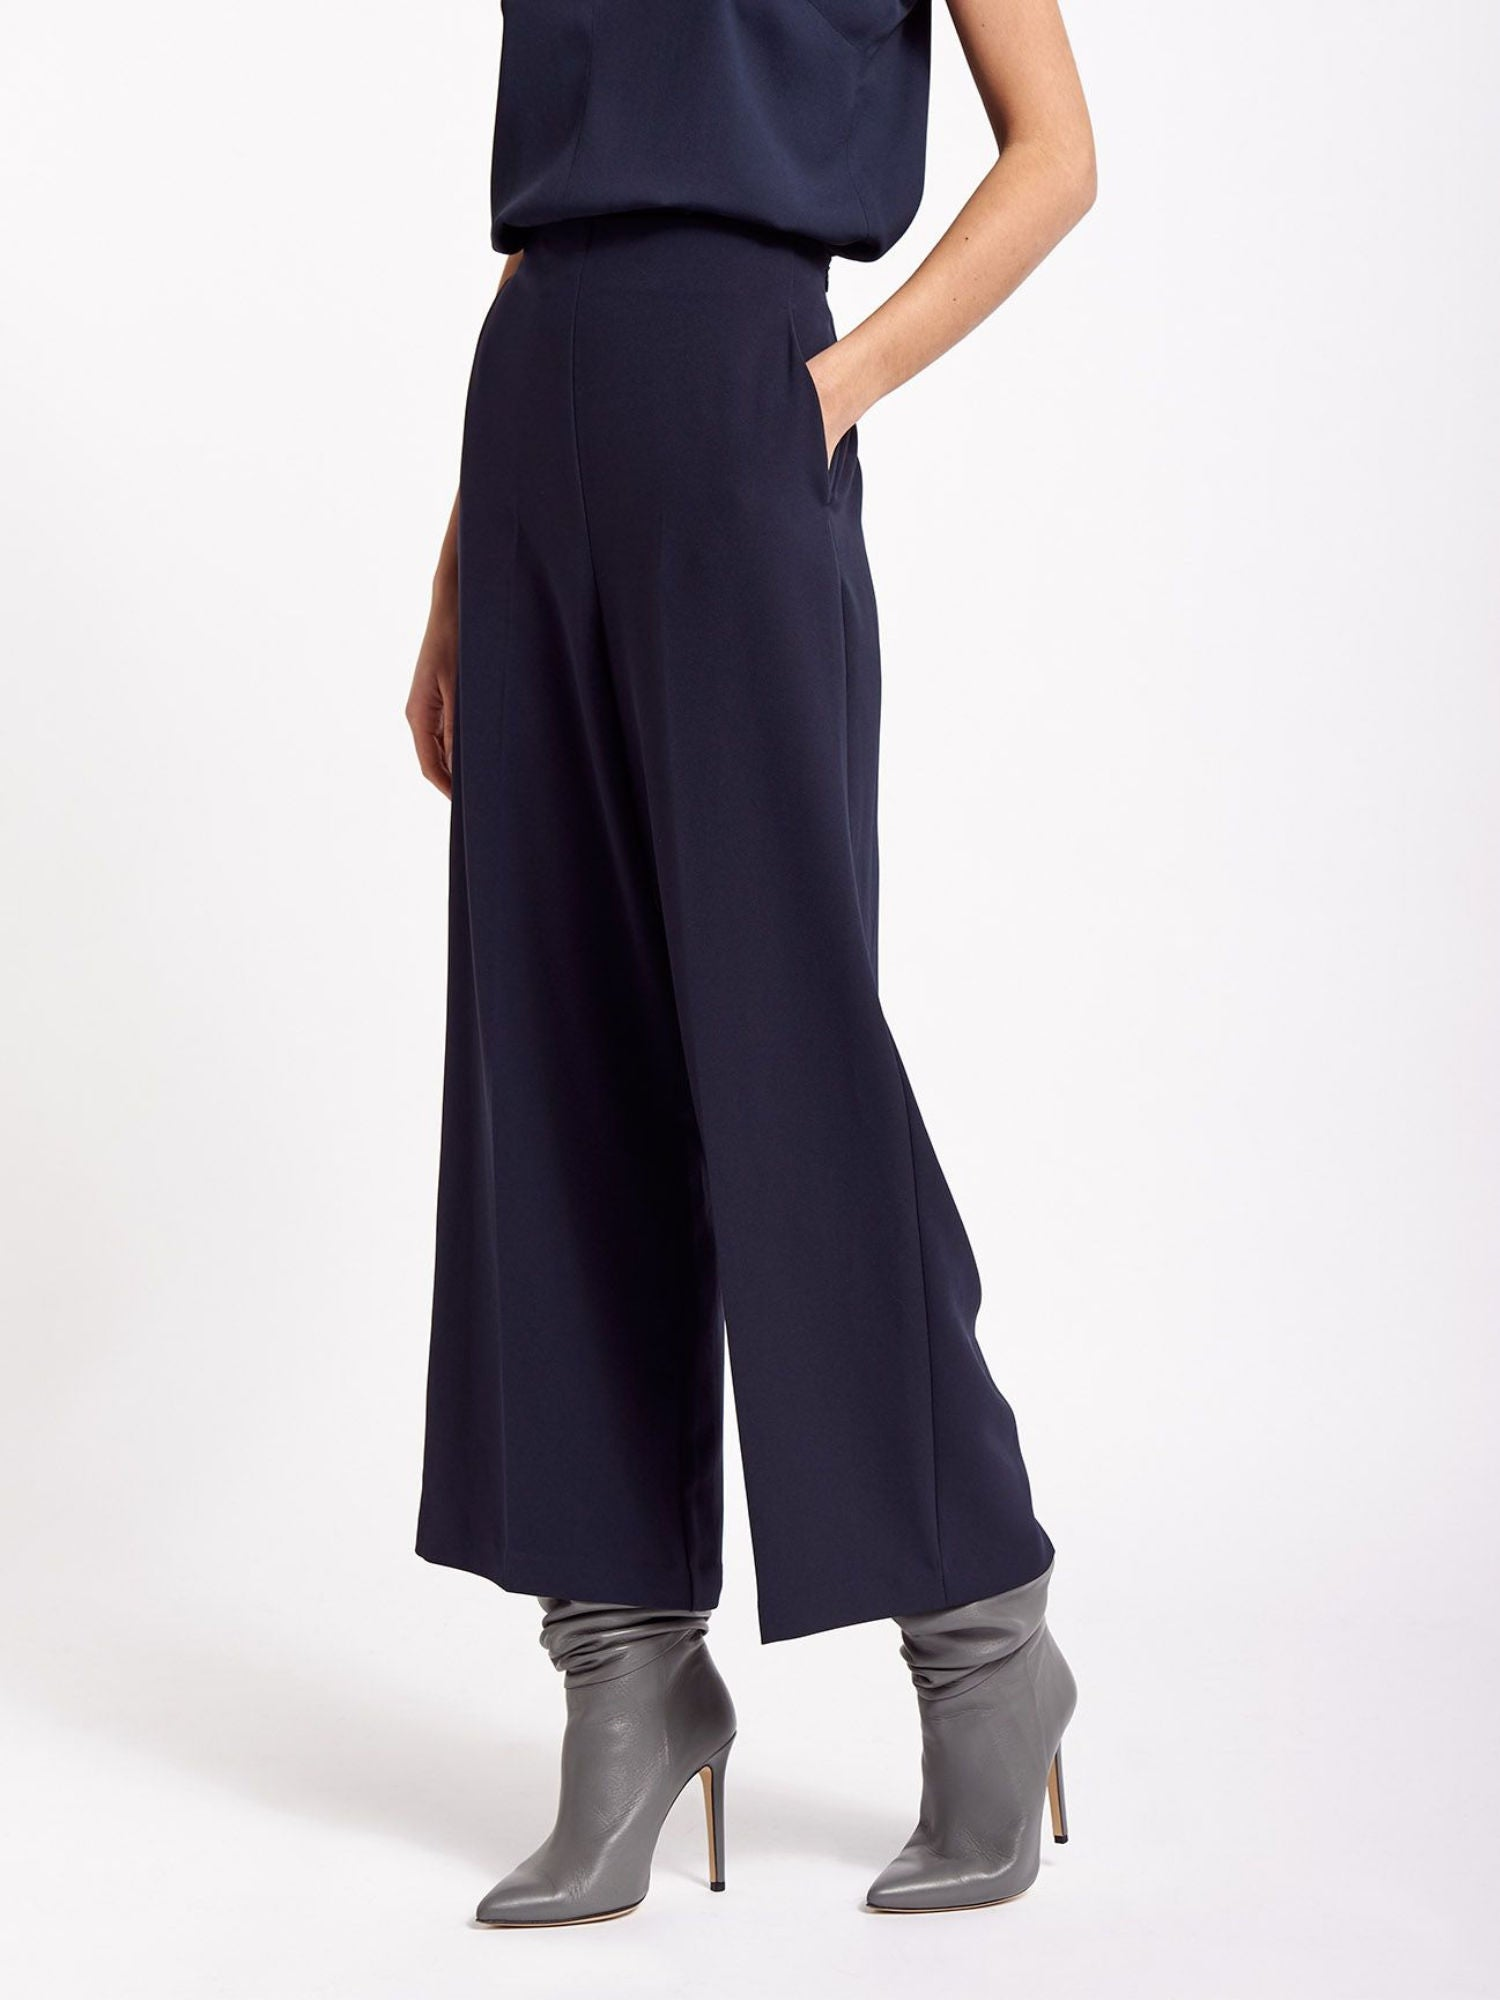 Beatrice B Navy Culottes